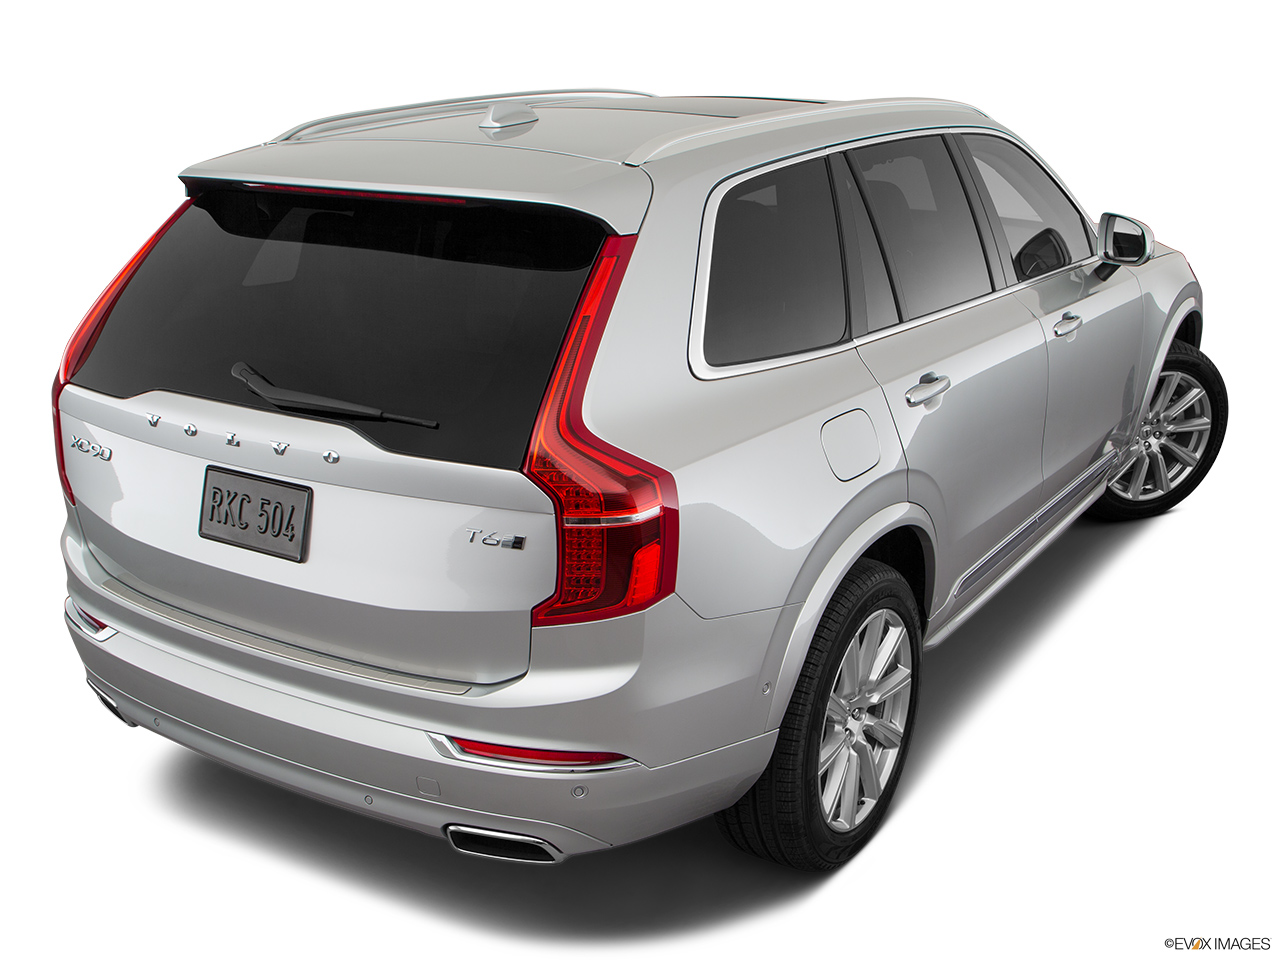 2019 Volvo XC90  T6 Inscription Rear 3/4 angle view.